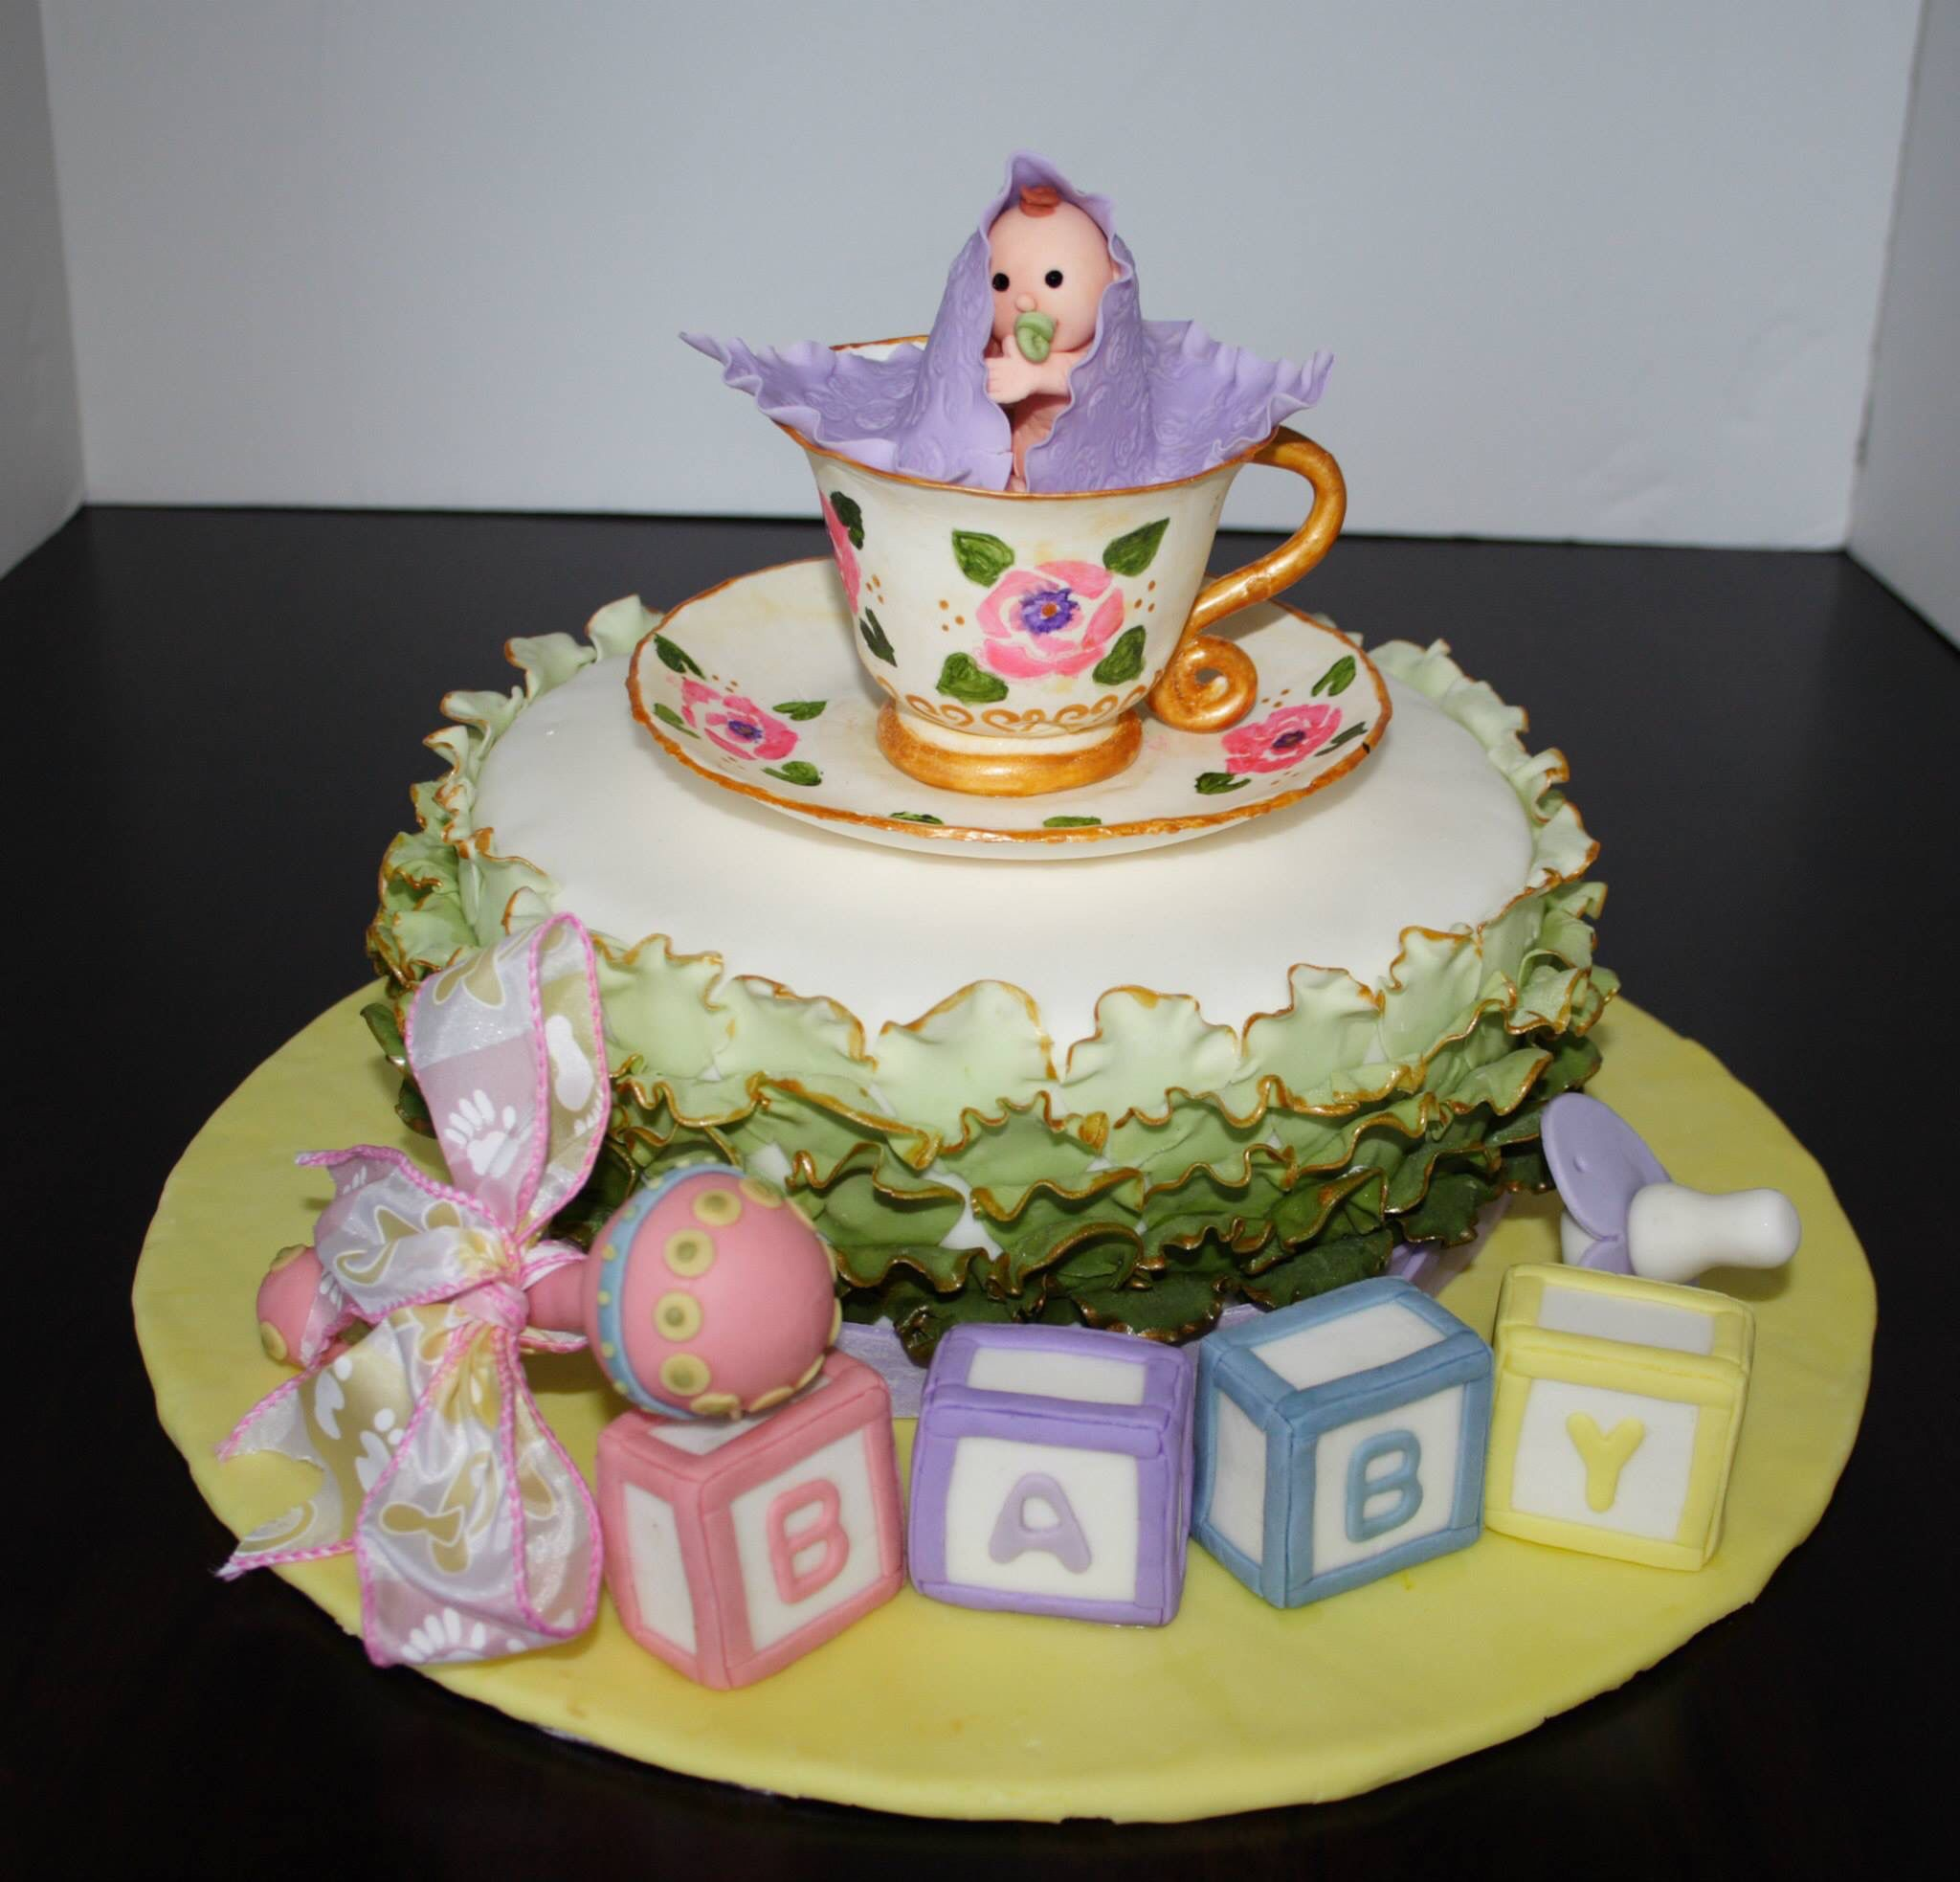 vons bakery baby shower cakes